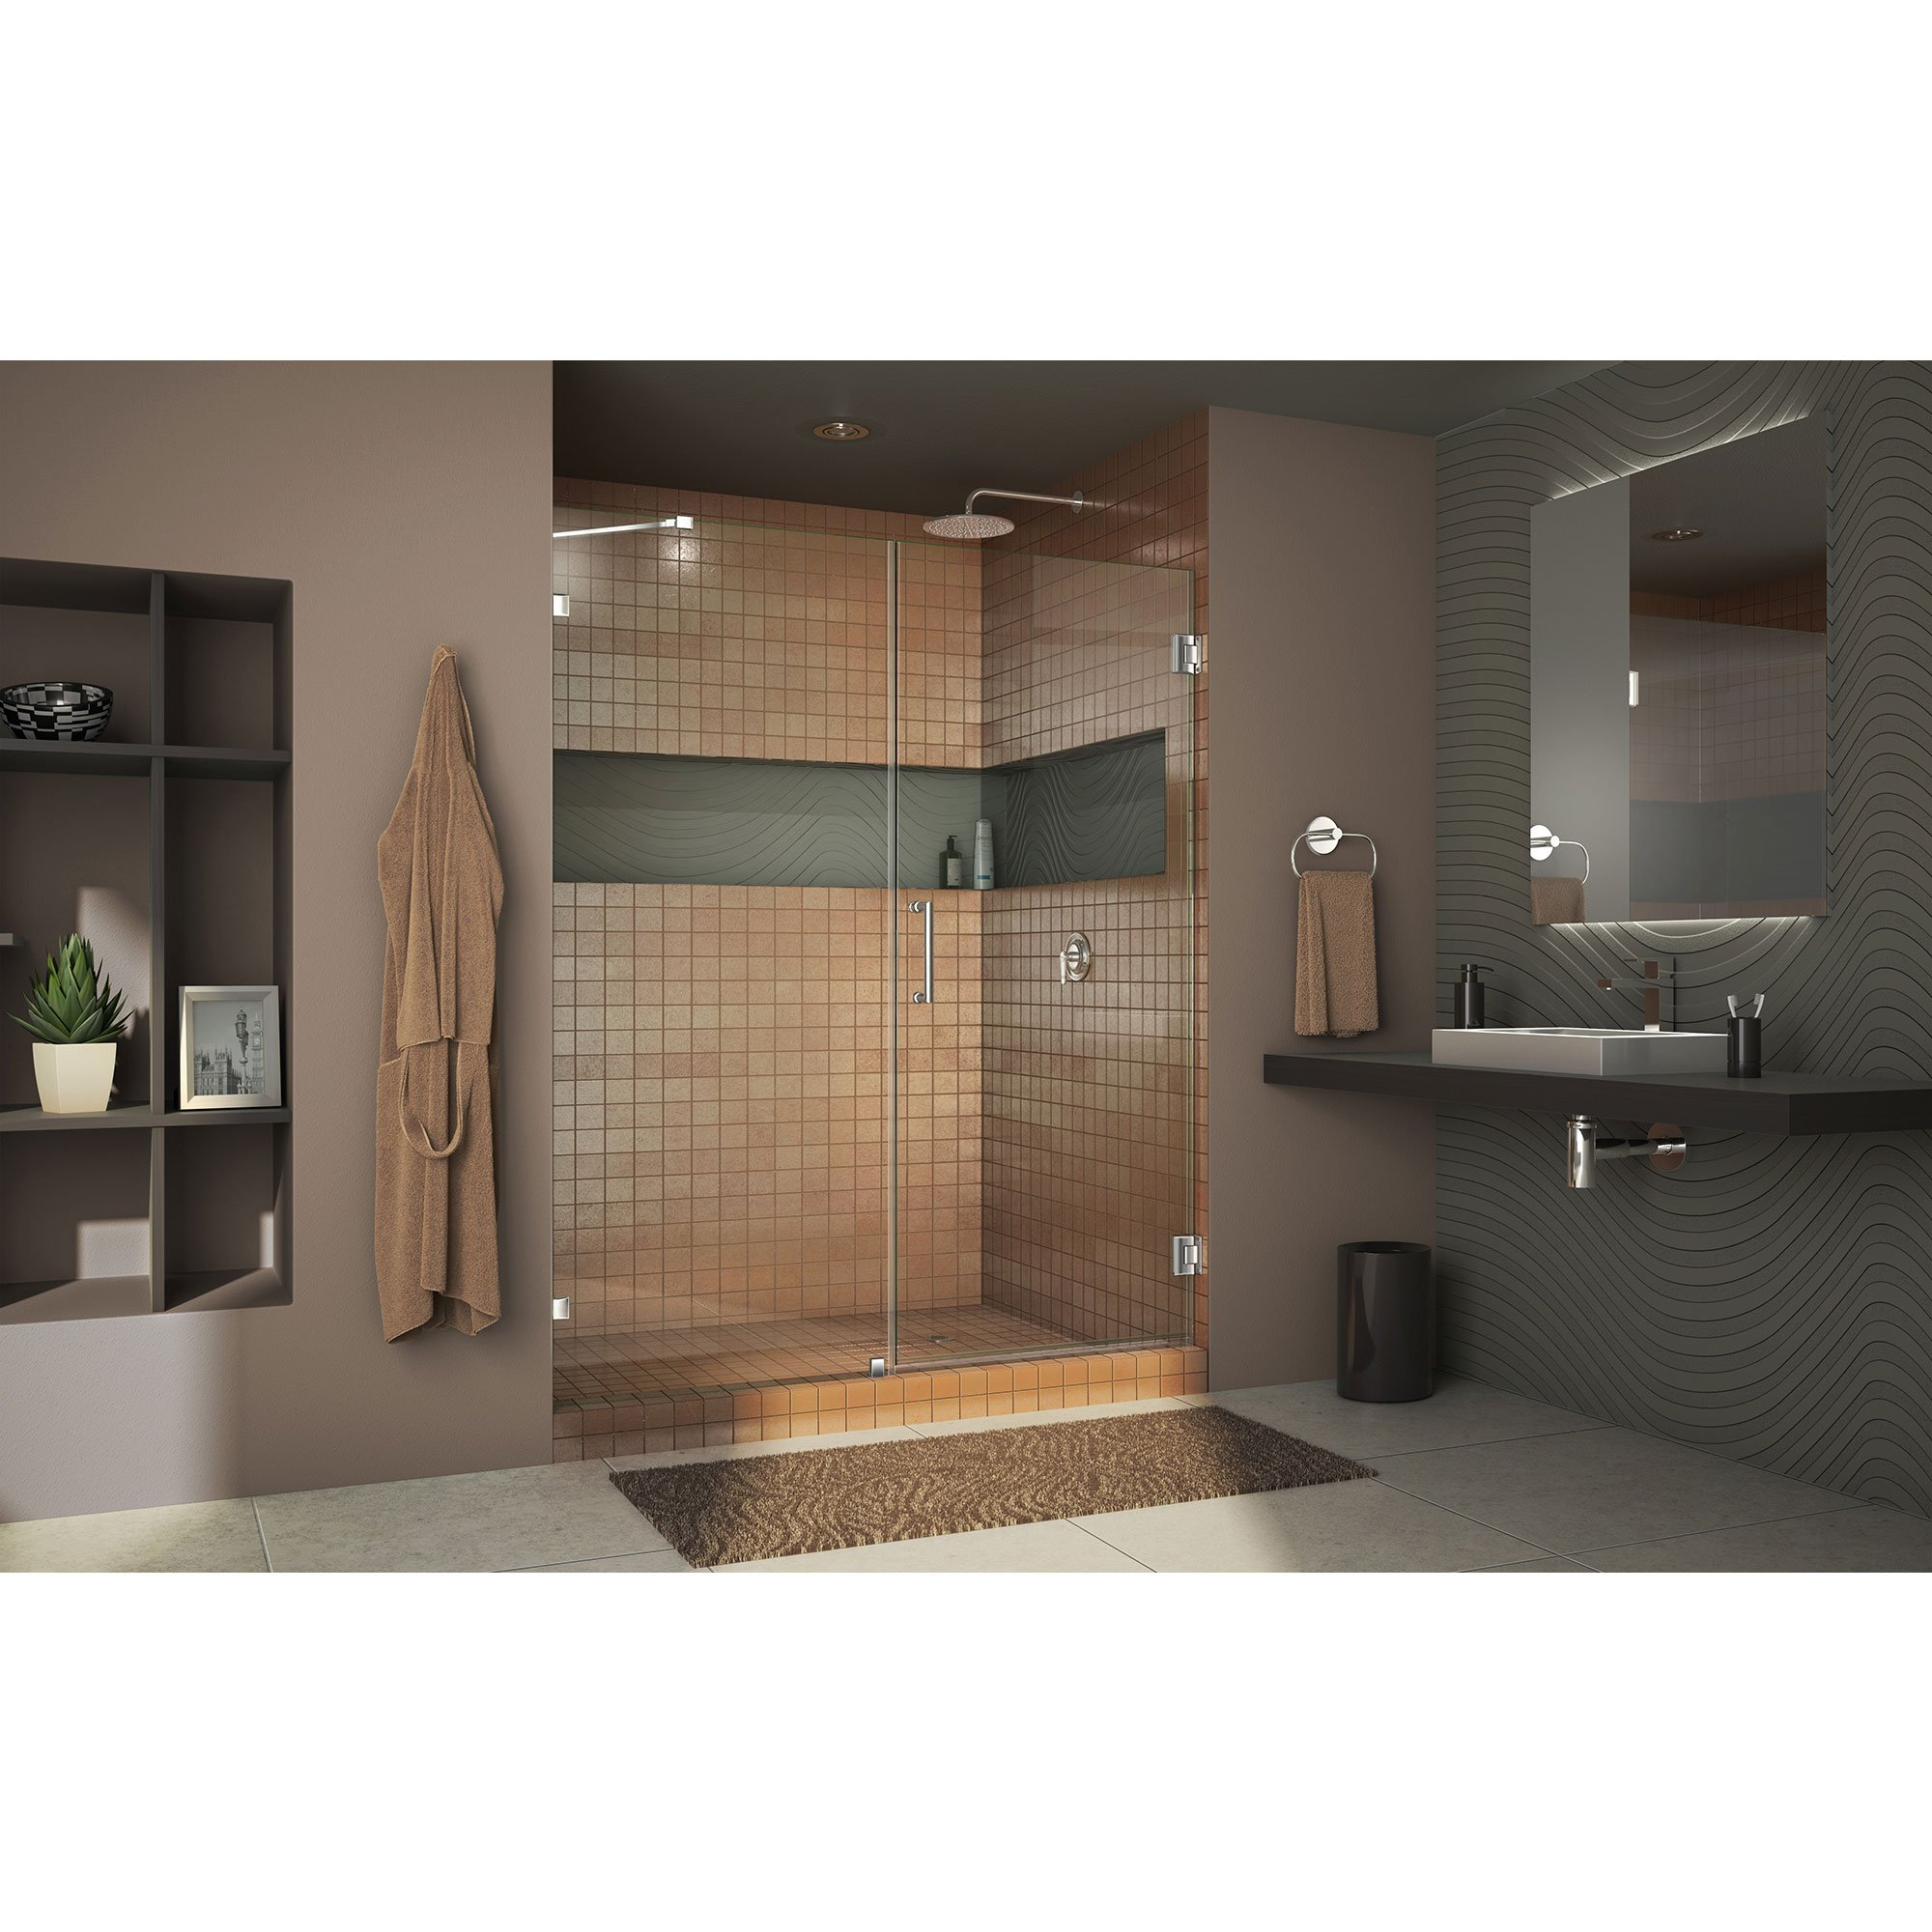 DreamLine Unidoor Lux 56 in. Width, Frameless Hinged Shower Door, 3/8'' Glass, Chrome Finish by DreamLine (Image #3)